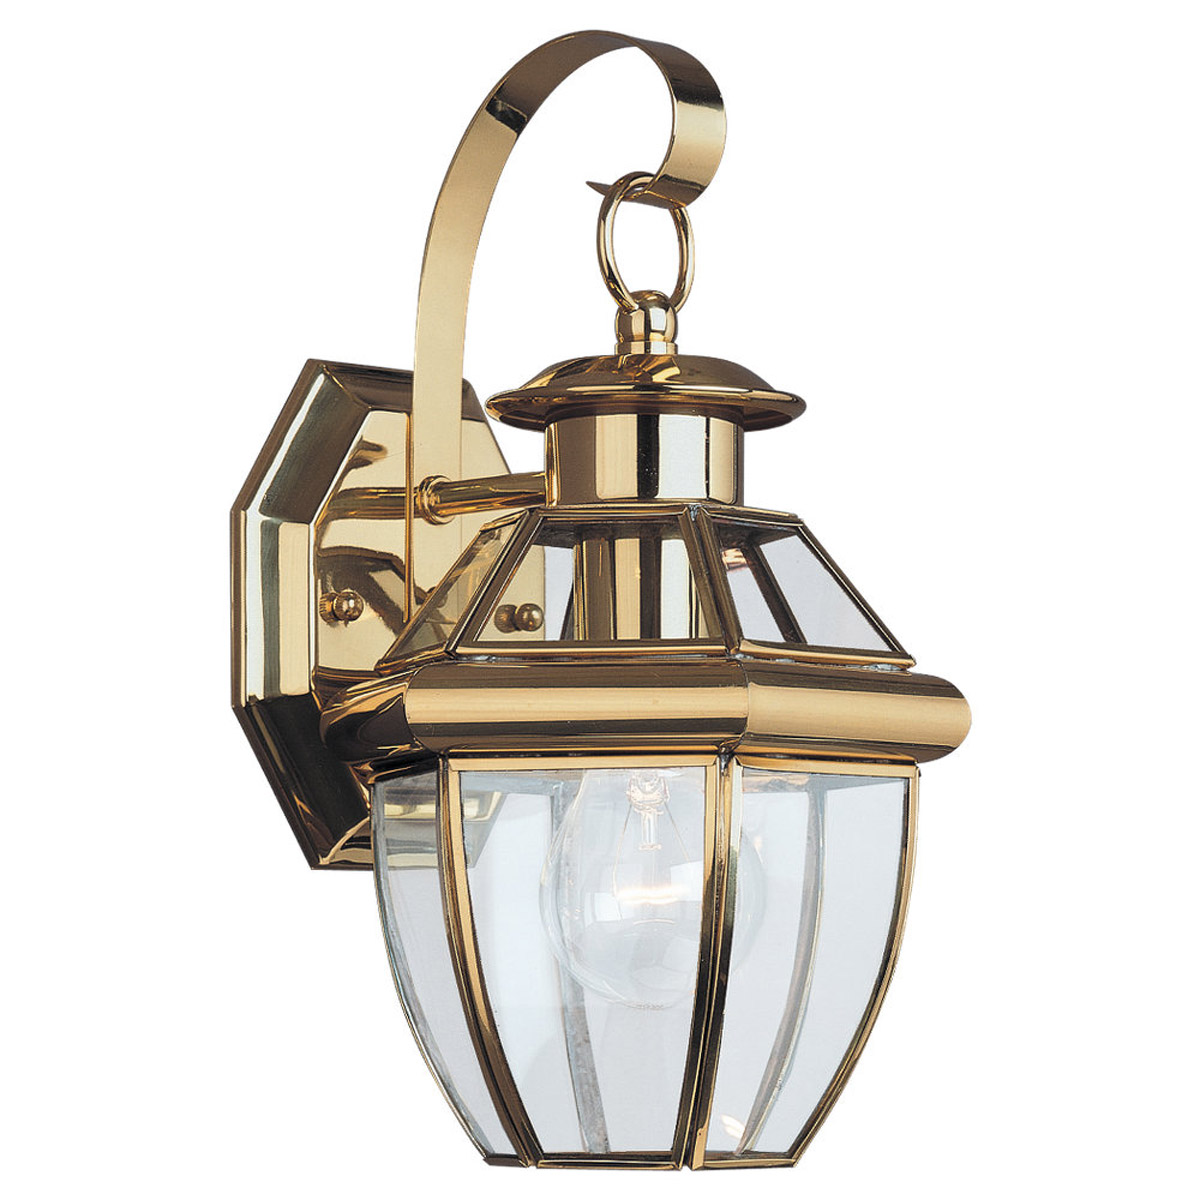 Sea Gull Lighting Lancaster 1 Light Outdoor Wall Lantern in Polished Brass 8037-02